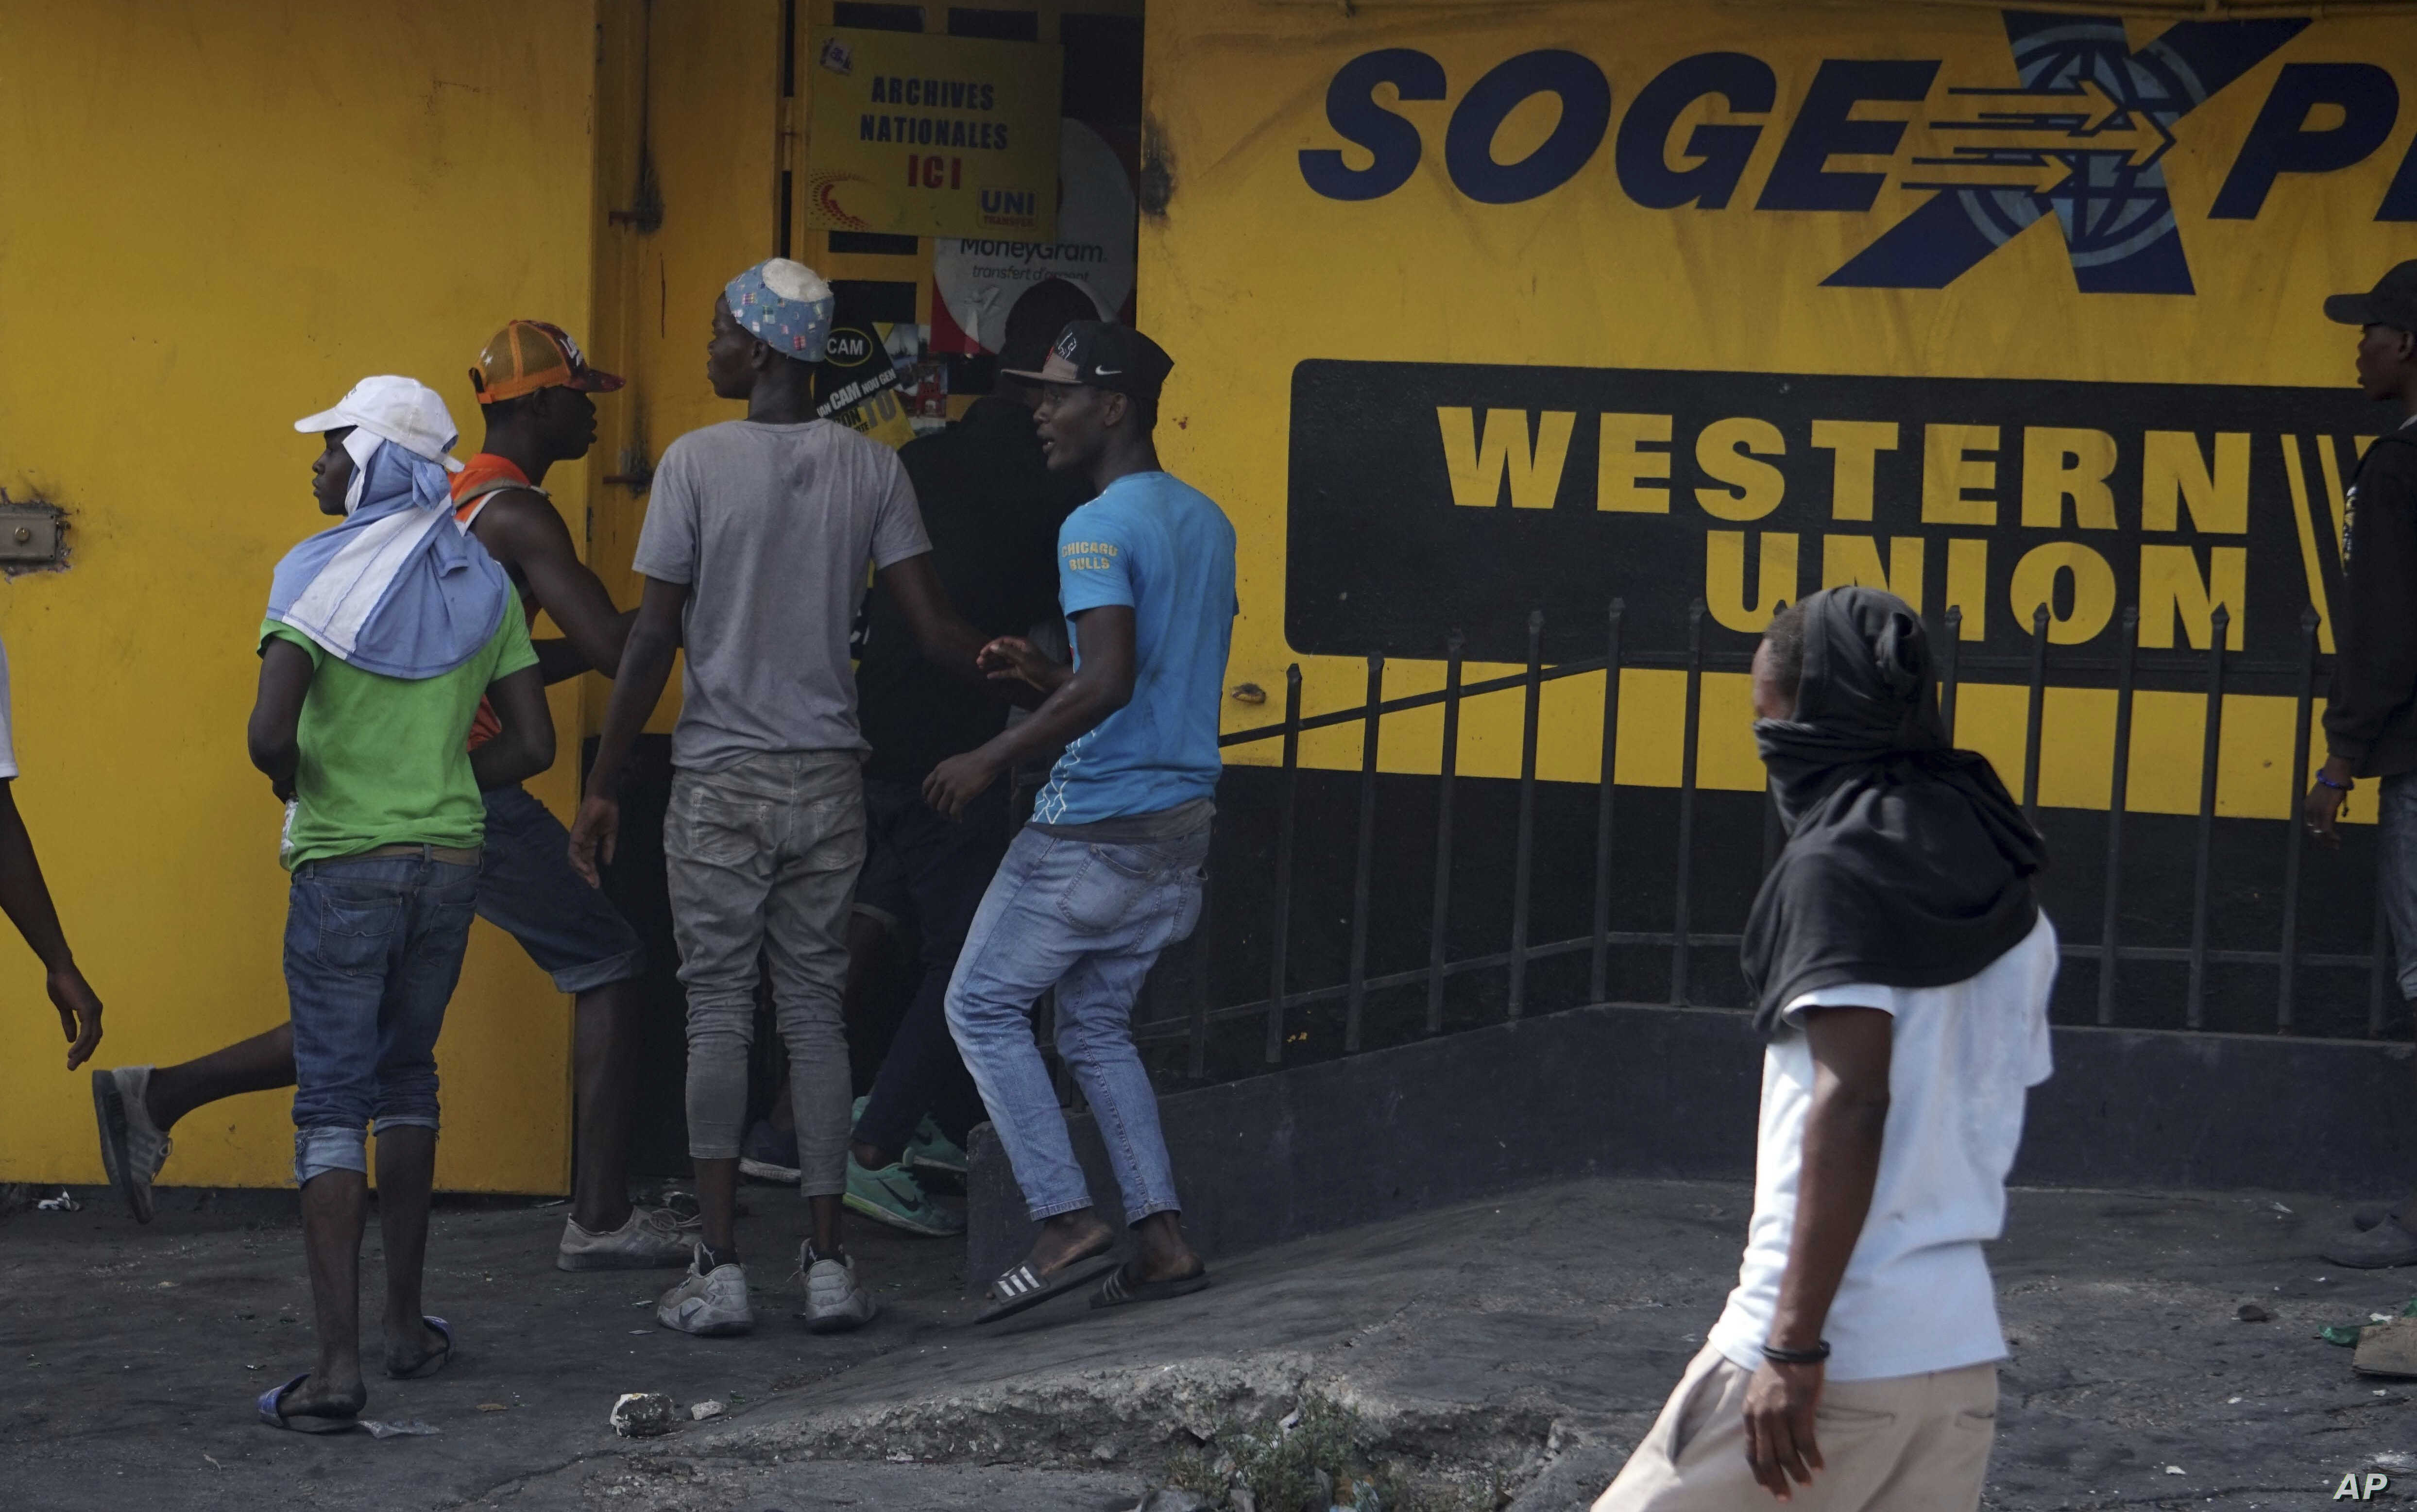 Protesters loot a money transfer office during a protest demanding the resignation of President Jovenel Moise in Port-au-Prince, Haiti, Thursday, June 13, 2019.